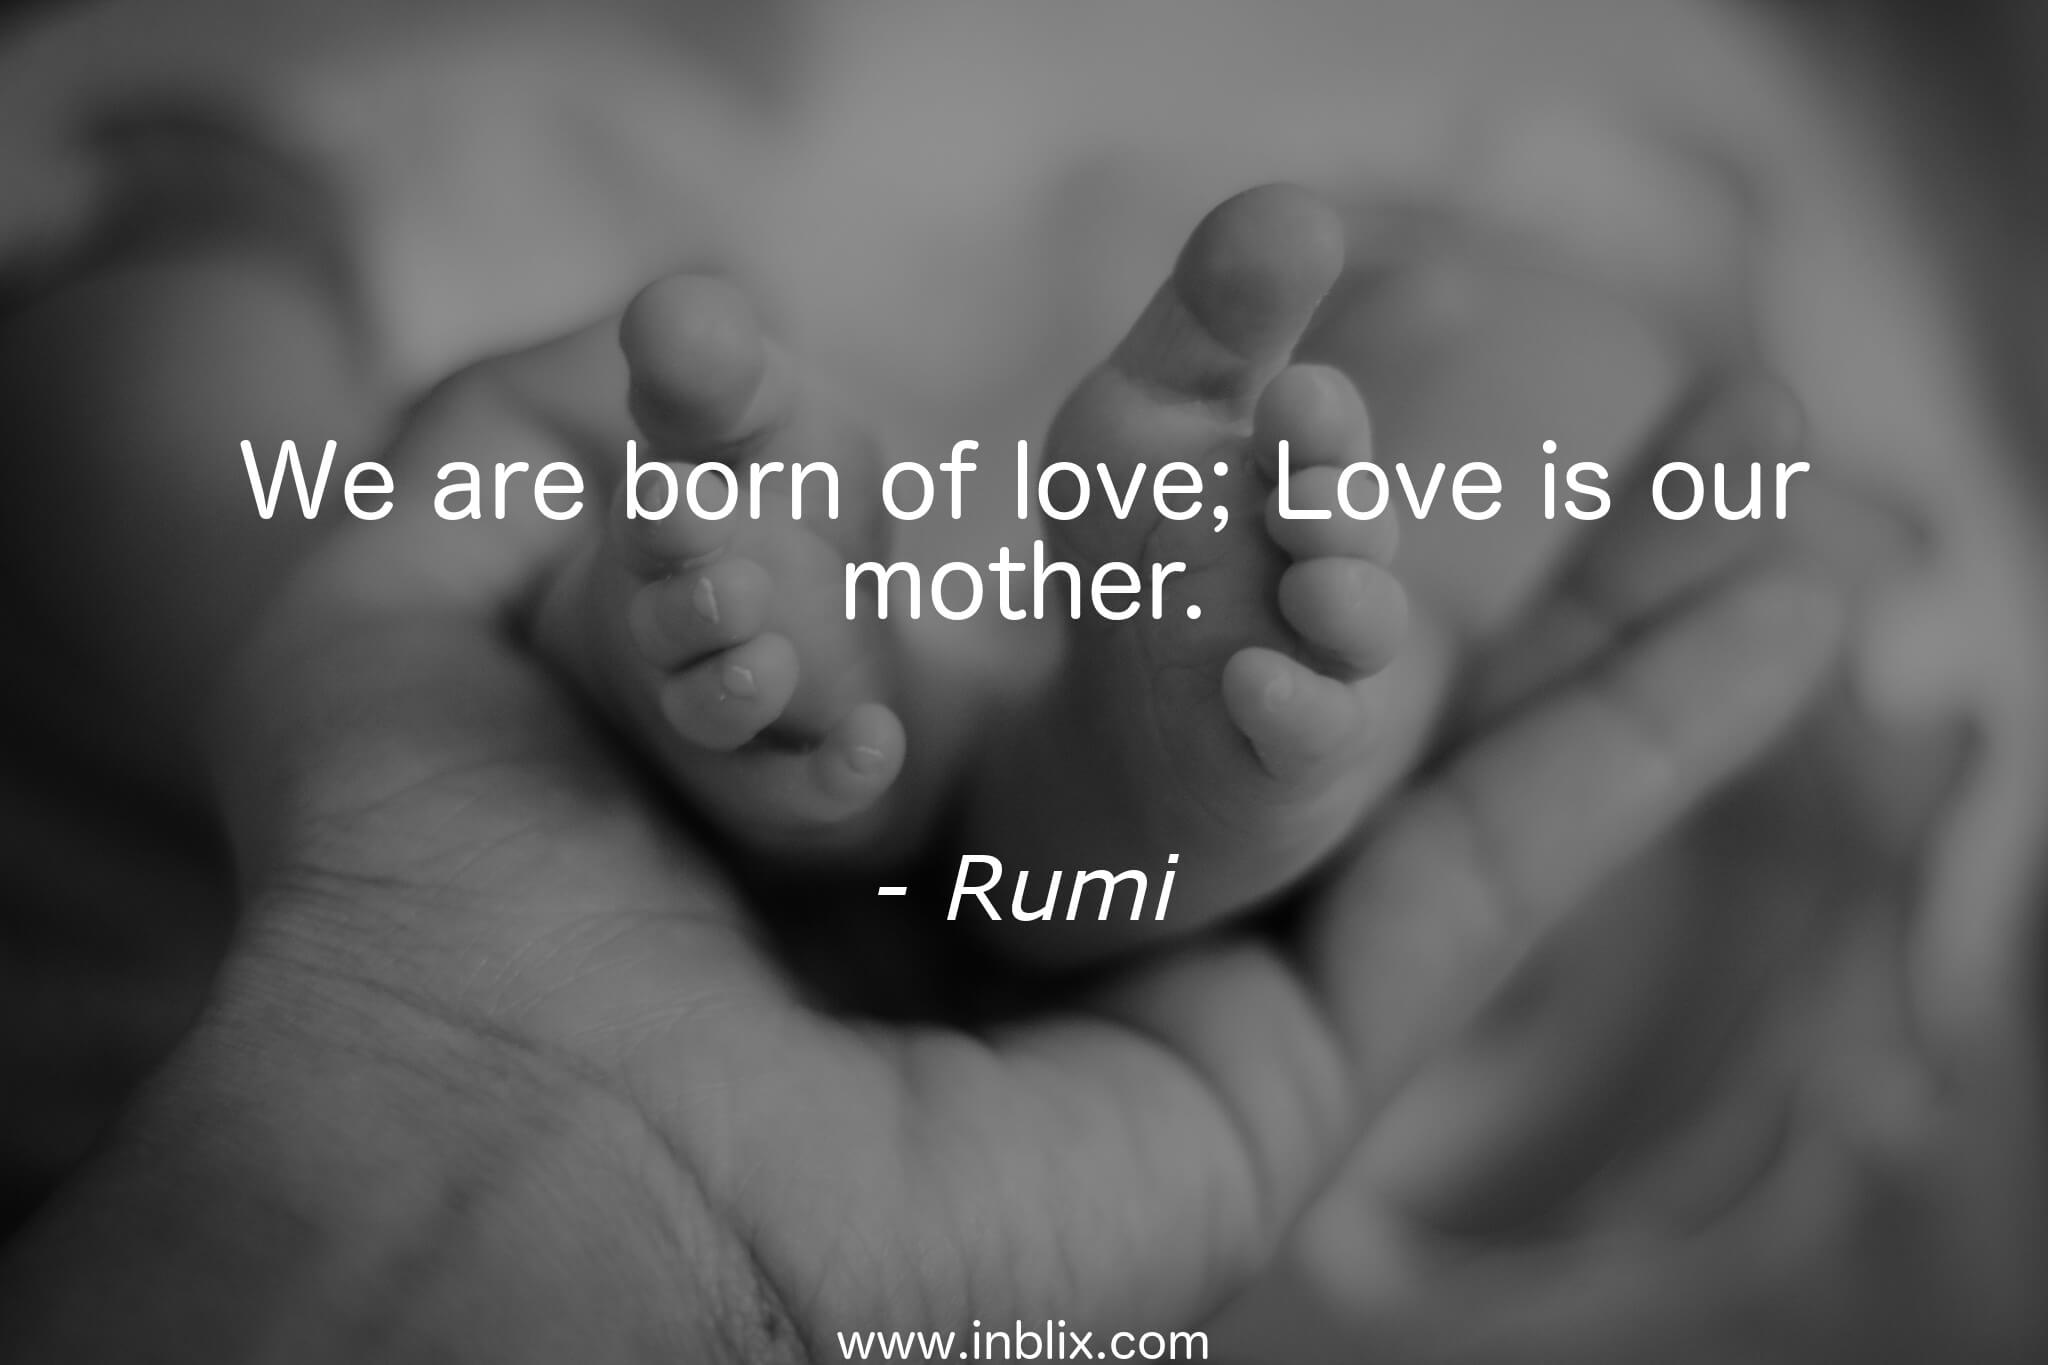 We are born of love; Love is our mother.